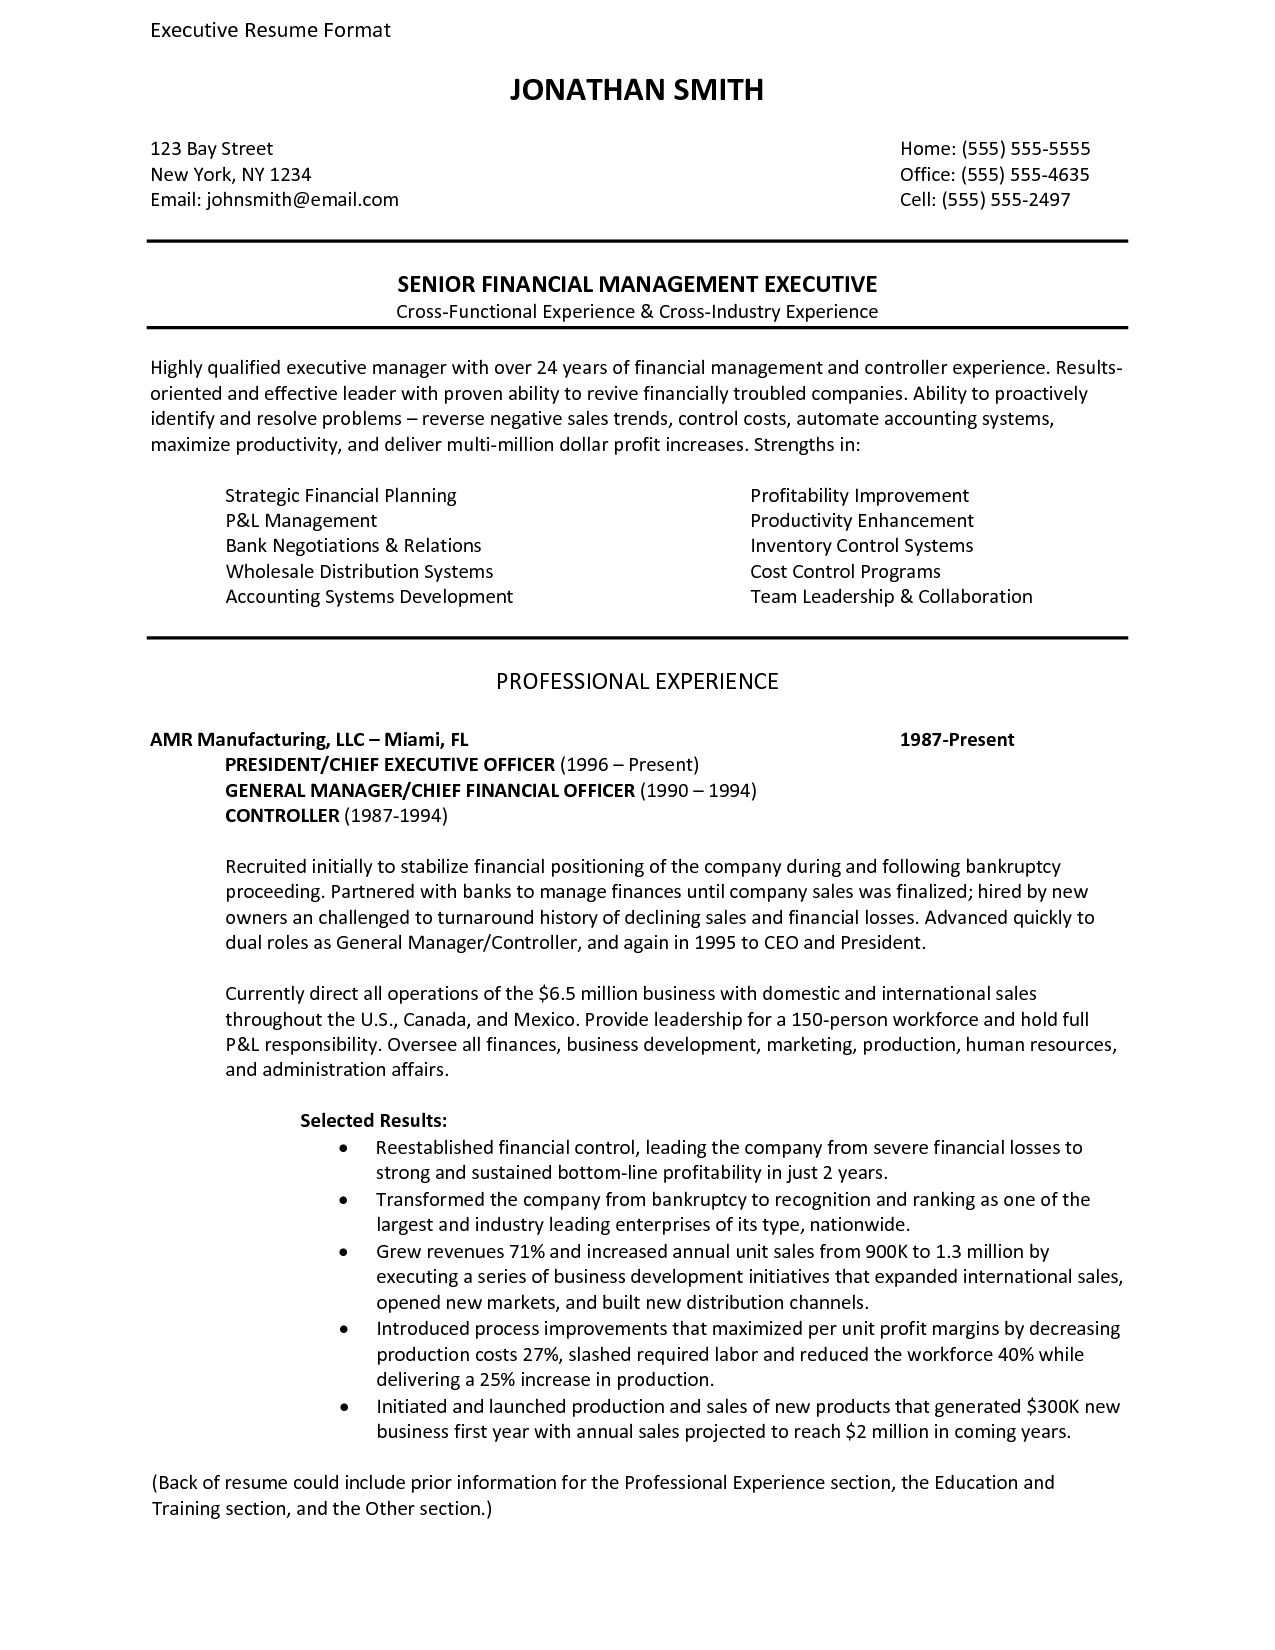 Good Fmcg Format Sample Executive Resume Cover Letter Pertaining To Executive Format Resume